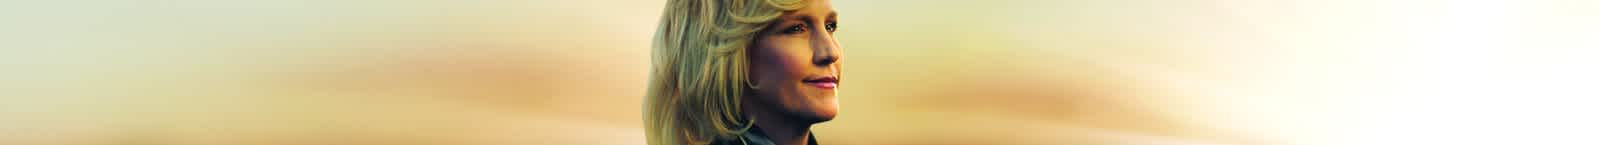 Shine Lawyers | Erin Brockovich CSG event Dalby | Shine Lawyers